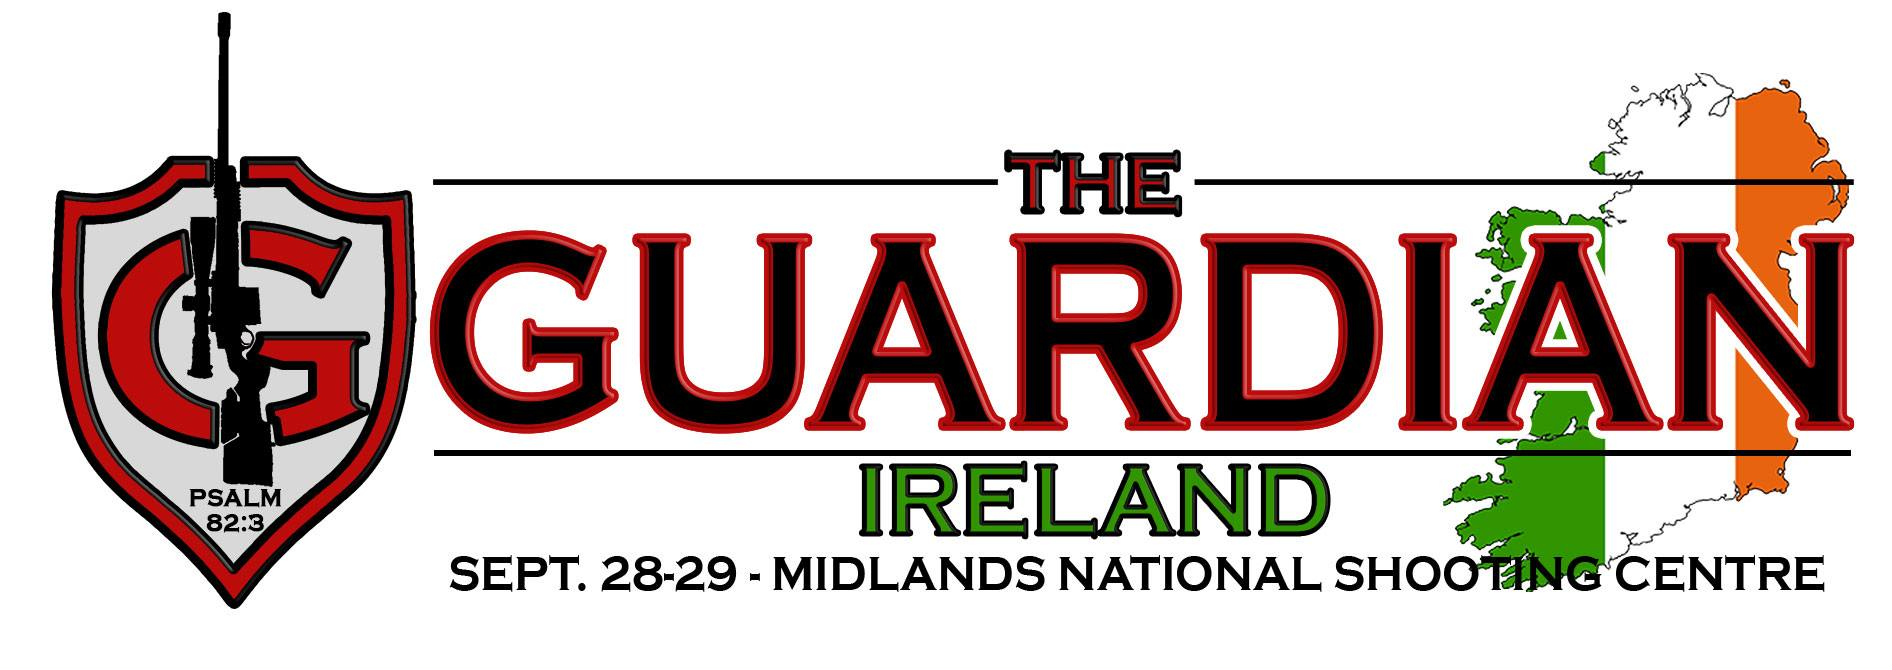 The Guardian Match in Ireland